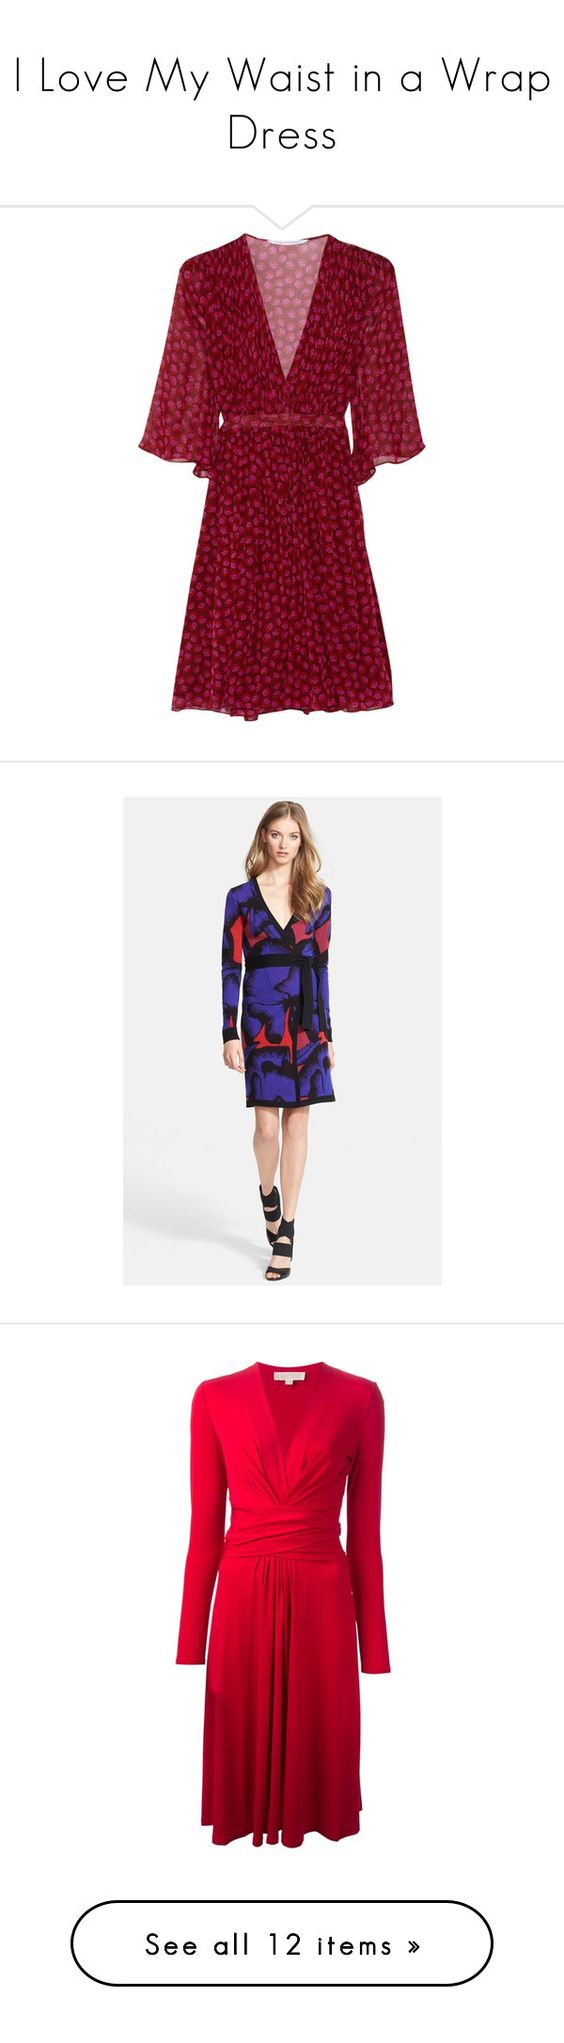 """I Love My Waist in a Wrap Dress"" by polyvore-editorial ❤ liked on Polyvore featuring wrapdress, lovemylook, Diane Von Furstenberg, Michael Kors, Westward Leaning, dresses, red dress, diane von furstenberg, red wrap dress and diane von furstenberg dresses"